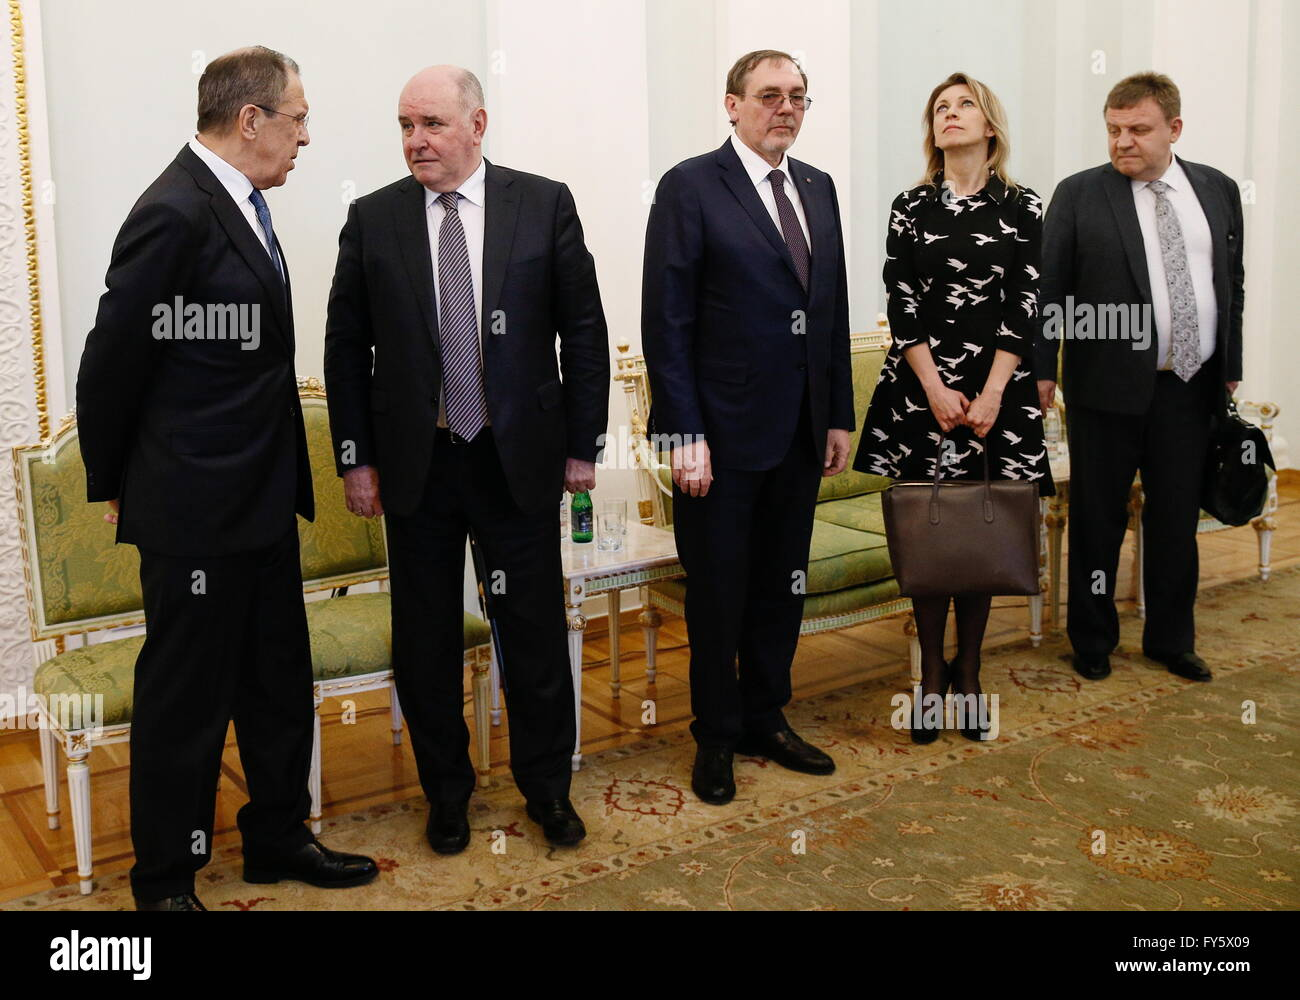 Yerevan, Armenia. 22nd Apr, 2016. Russia's Foreign Minister Sergei Lavrov, Russia's Deputy Foreign Minister - Stock Image